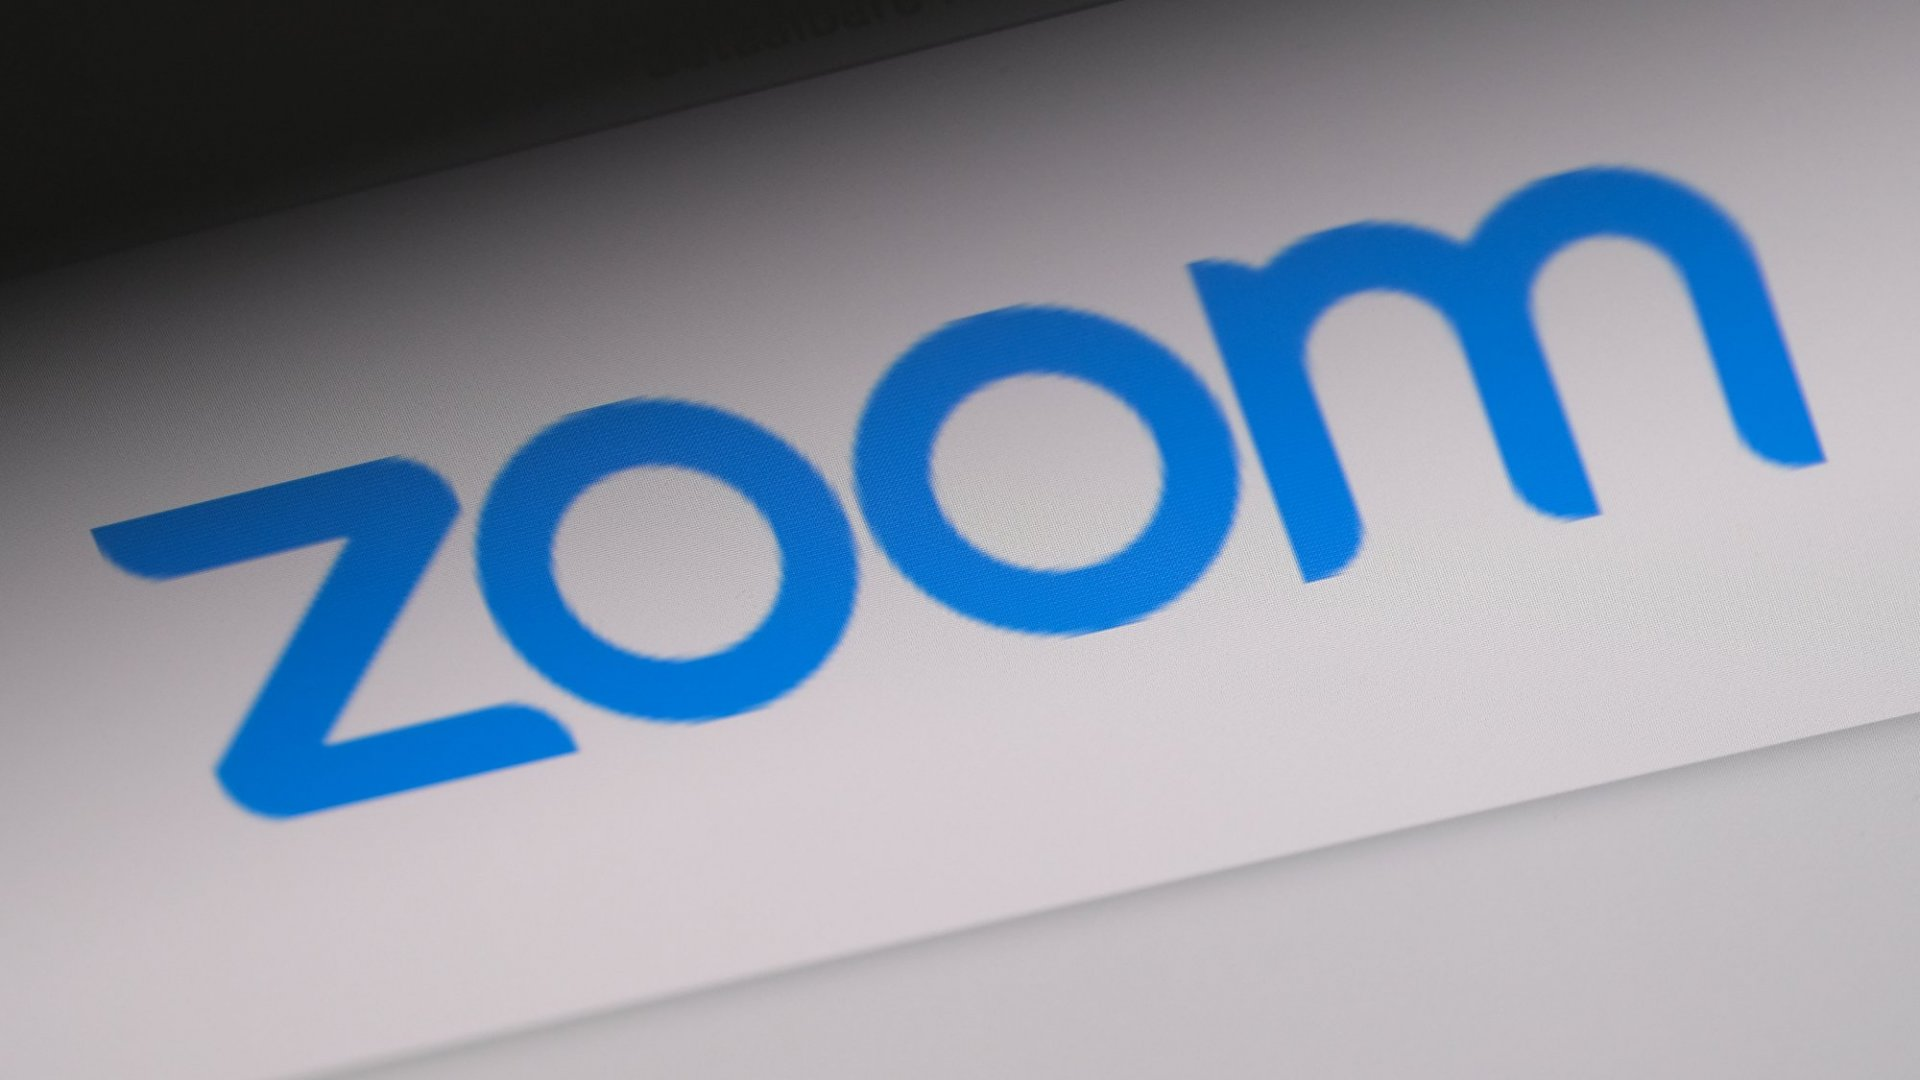 What You Need to Know About Zoom's Latest Security Updates